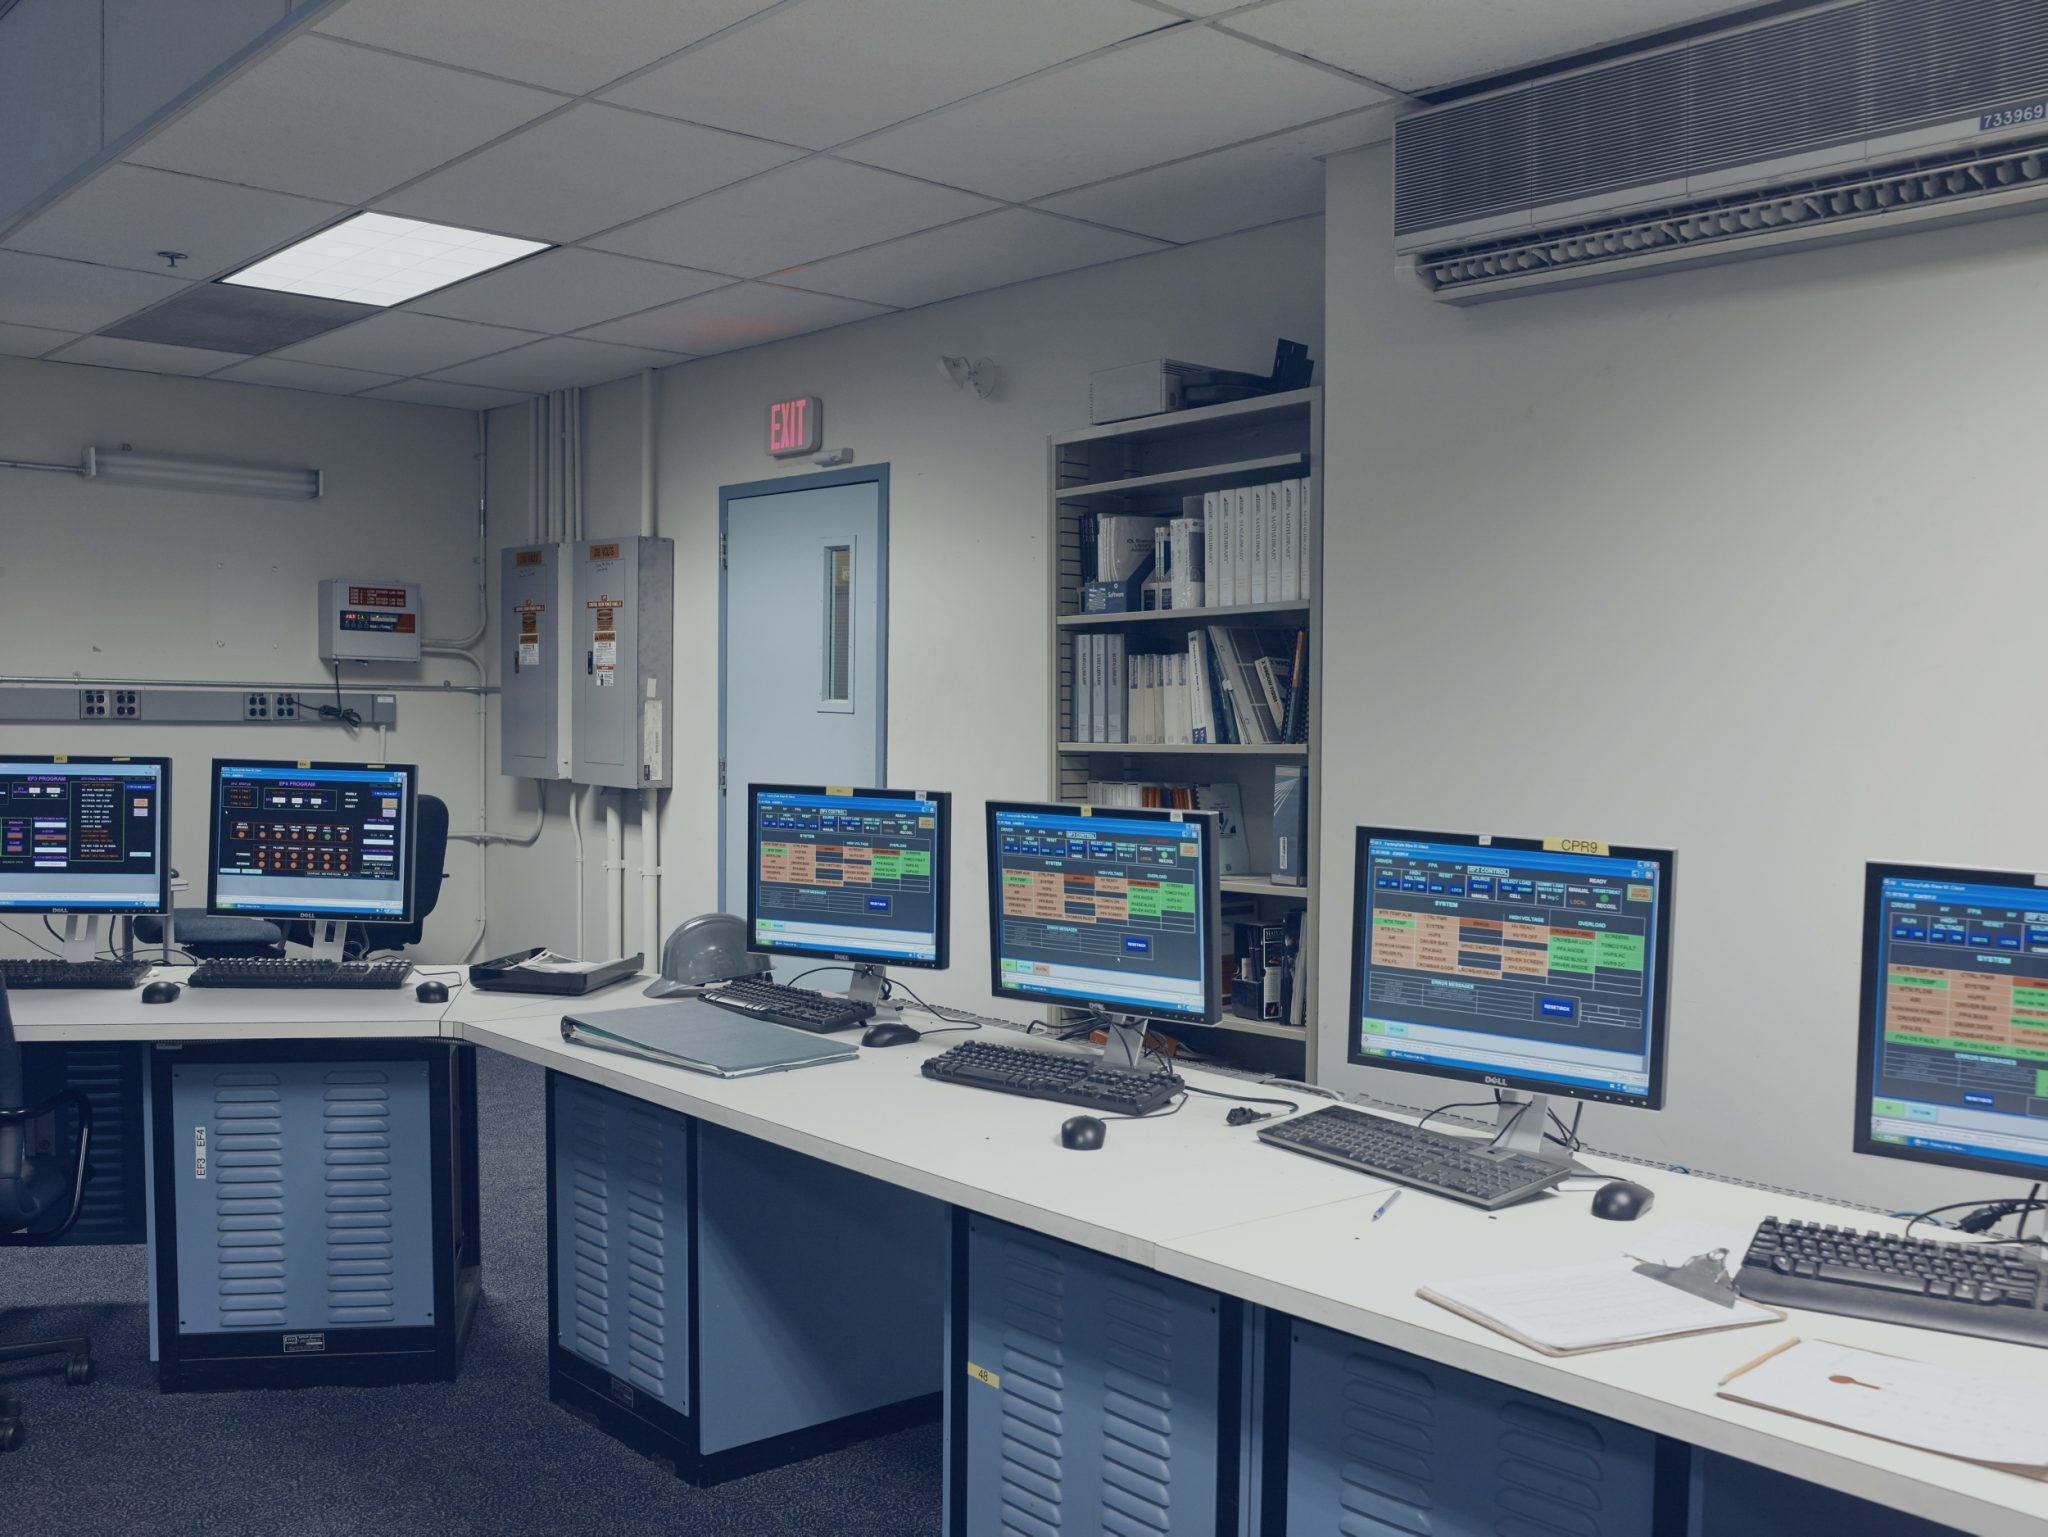 Department of Nuclear Science and Engineering. Control room of the particle accelerator for the C-Mod experiment. Massachusetts Institute of Technology, Cambridge, USA, 2017